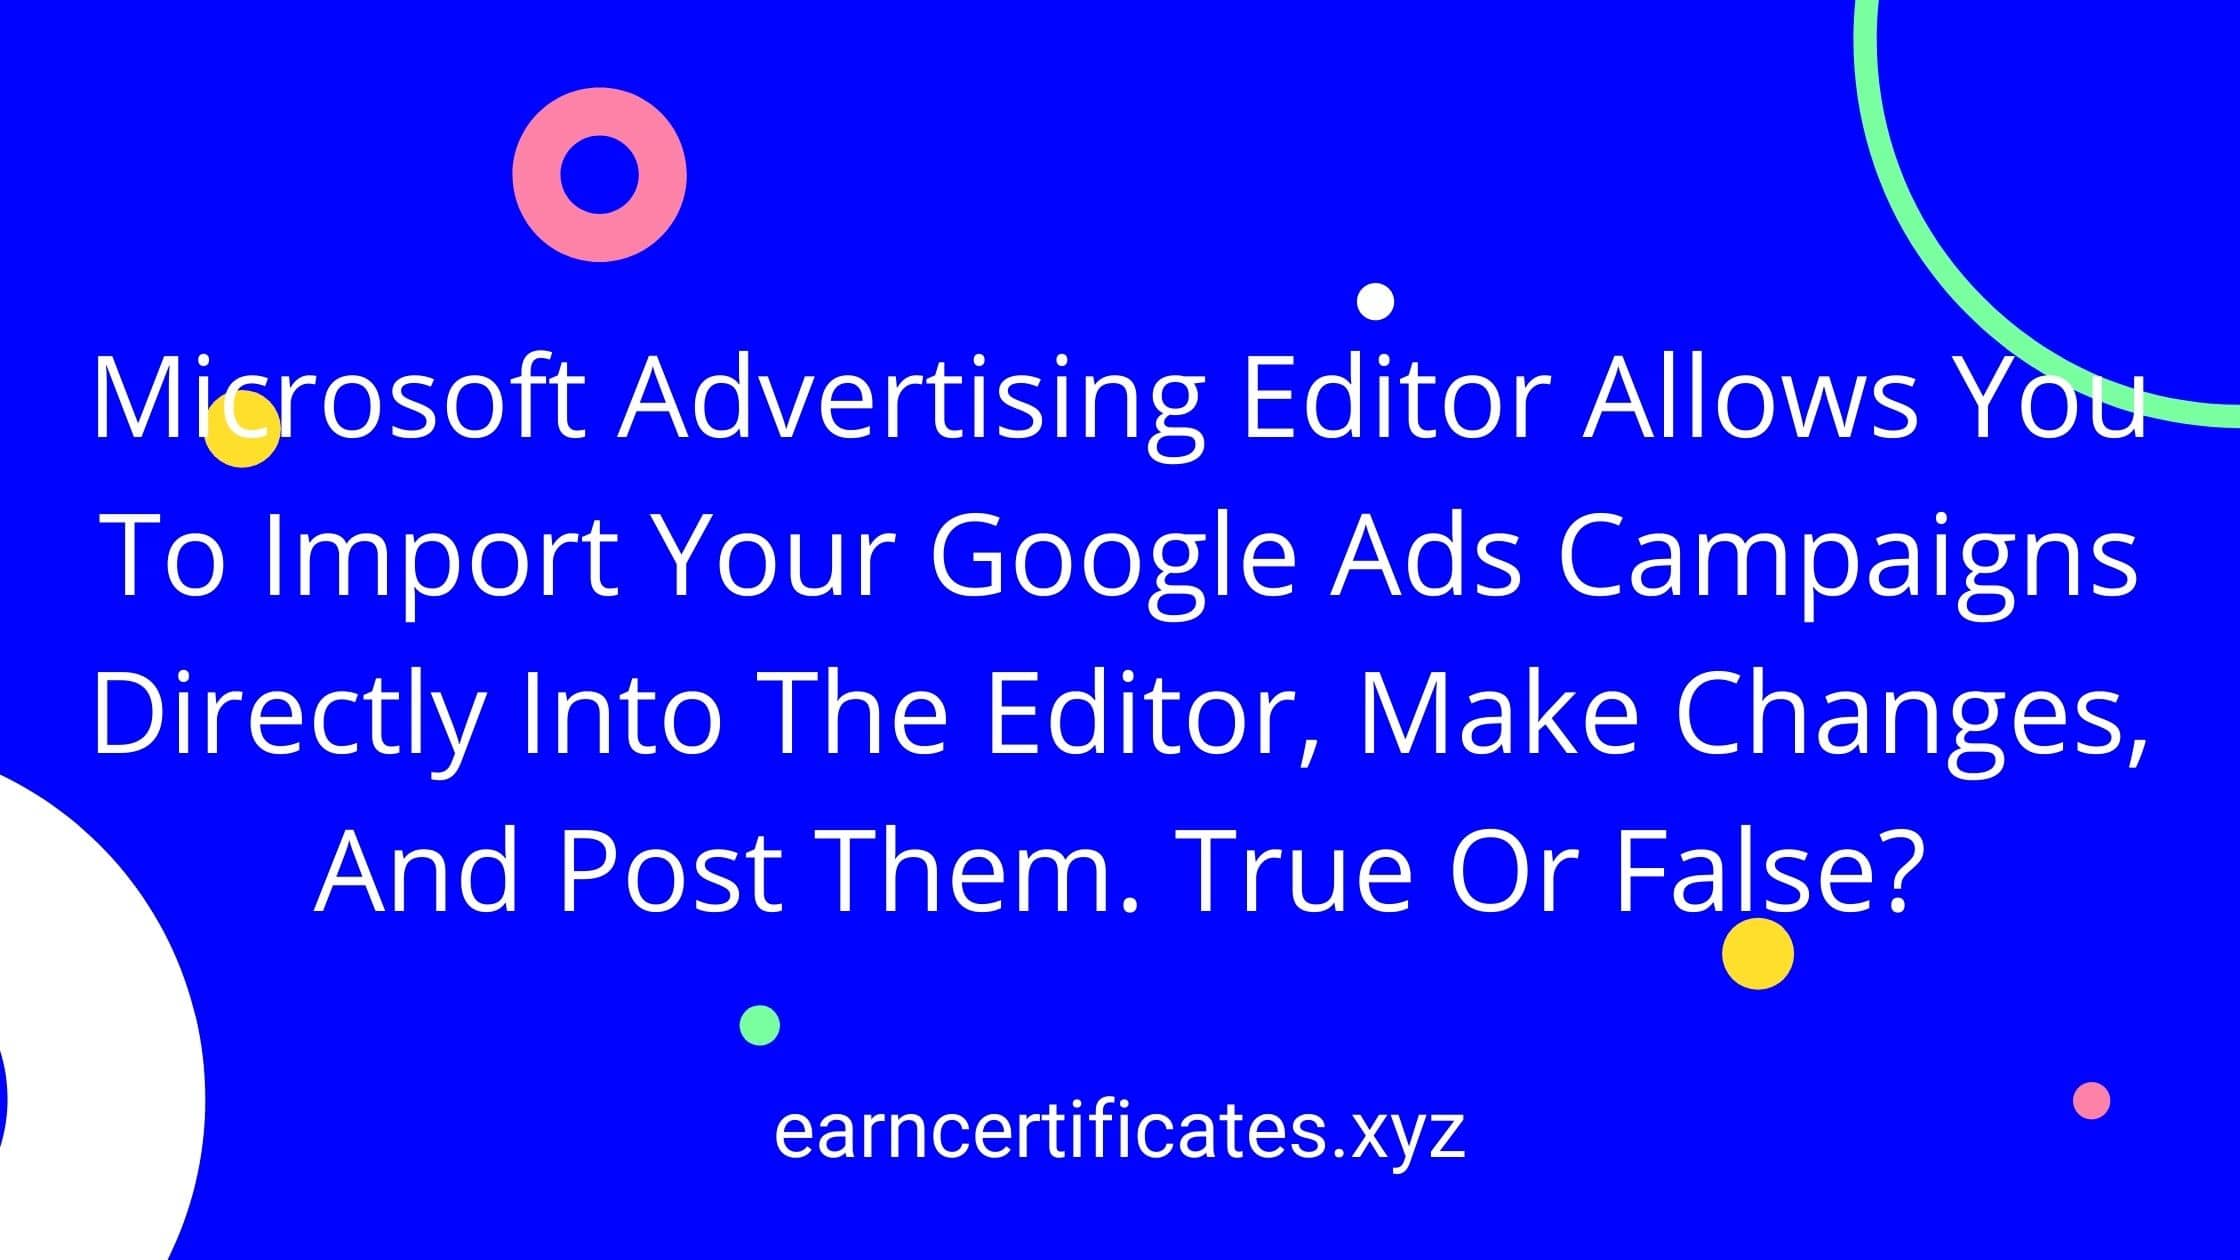 Microsoft Advertising Editor Allows You To Import Your Google Ads Campaigns Directly Into The Editor, Make Changes, And Post Them. True Or False?